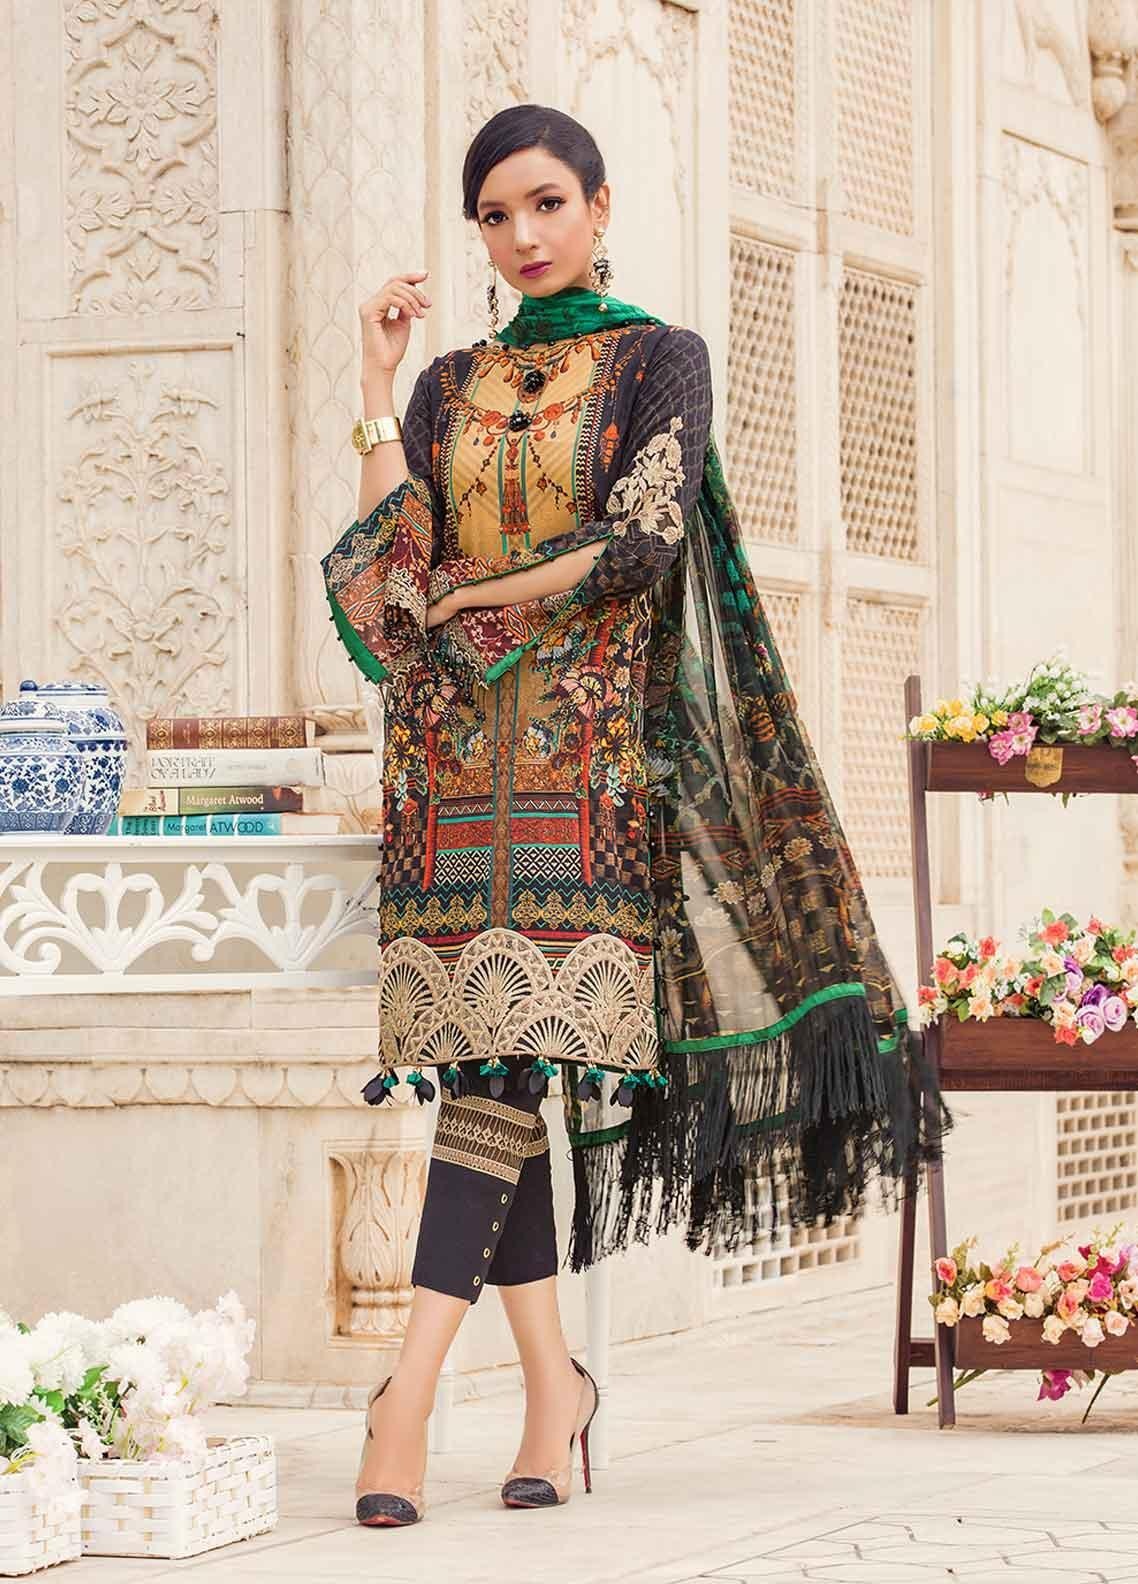 73c572bcab Gulaal Embroidered Organza Stitched Kurtis SK-03 Black. PKR 4,500.00. Gulaal  Embroidered Lawn Unstitched 3 Piece Suit GL19-L2 02 ROYAL GRANDEUR - Mid  Summer